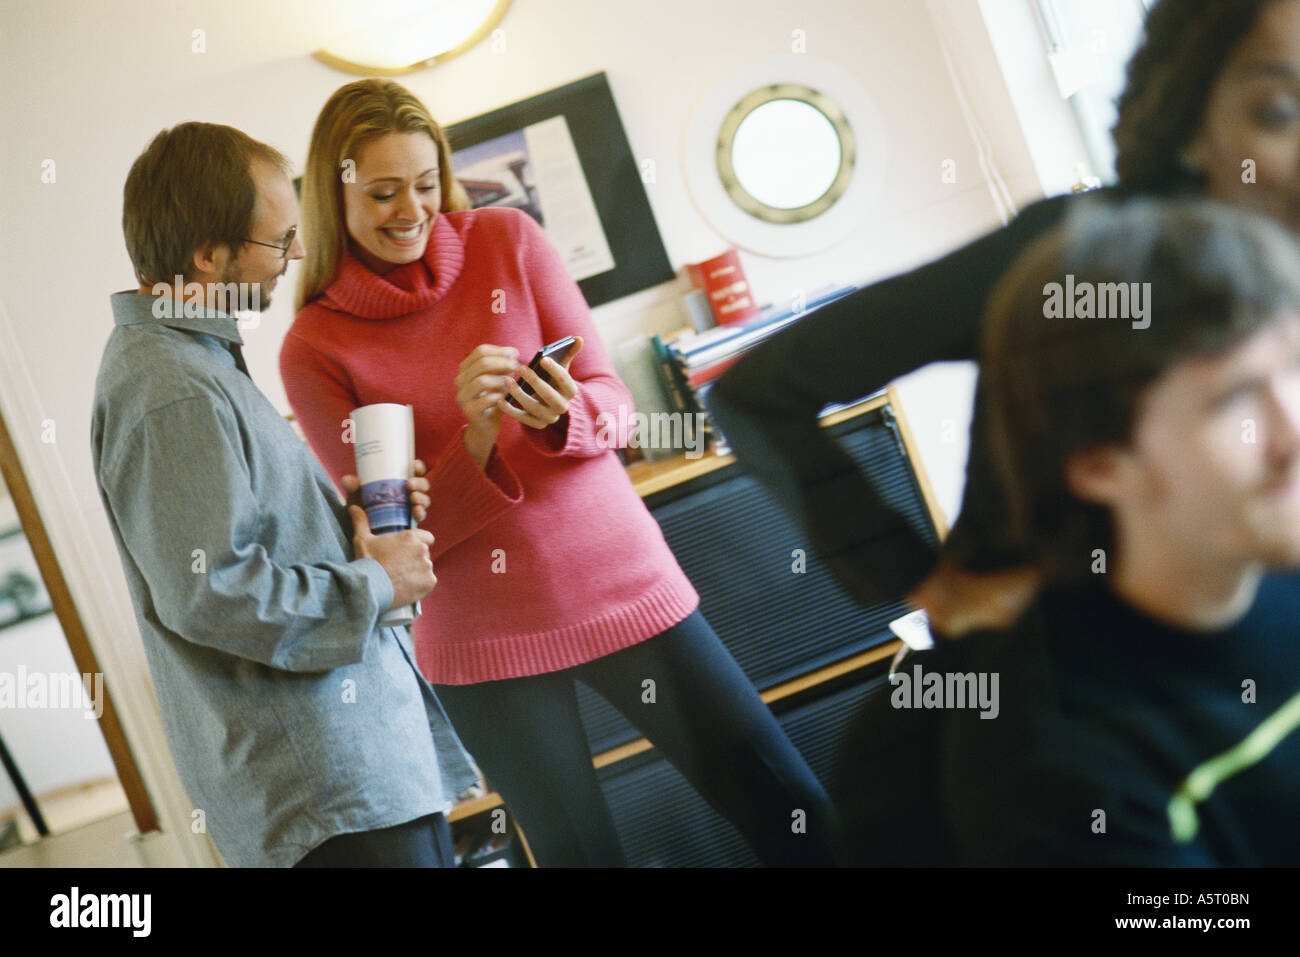 Man and woman using electronic organizer, second man and woman in foreground Stock Photo